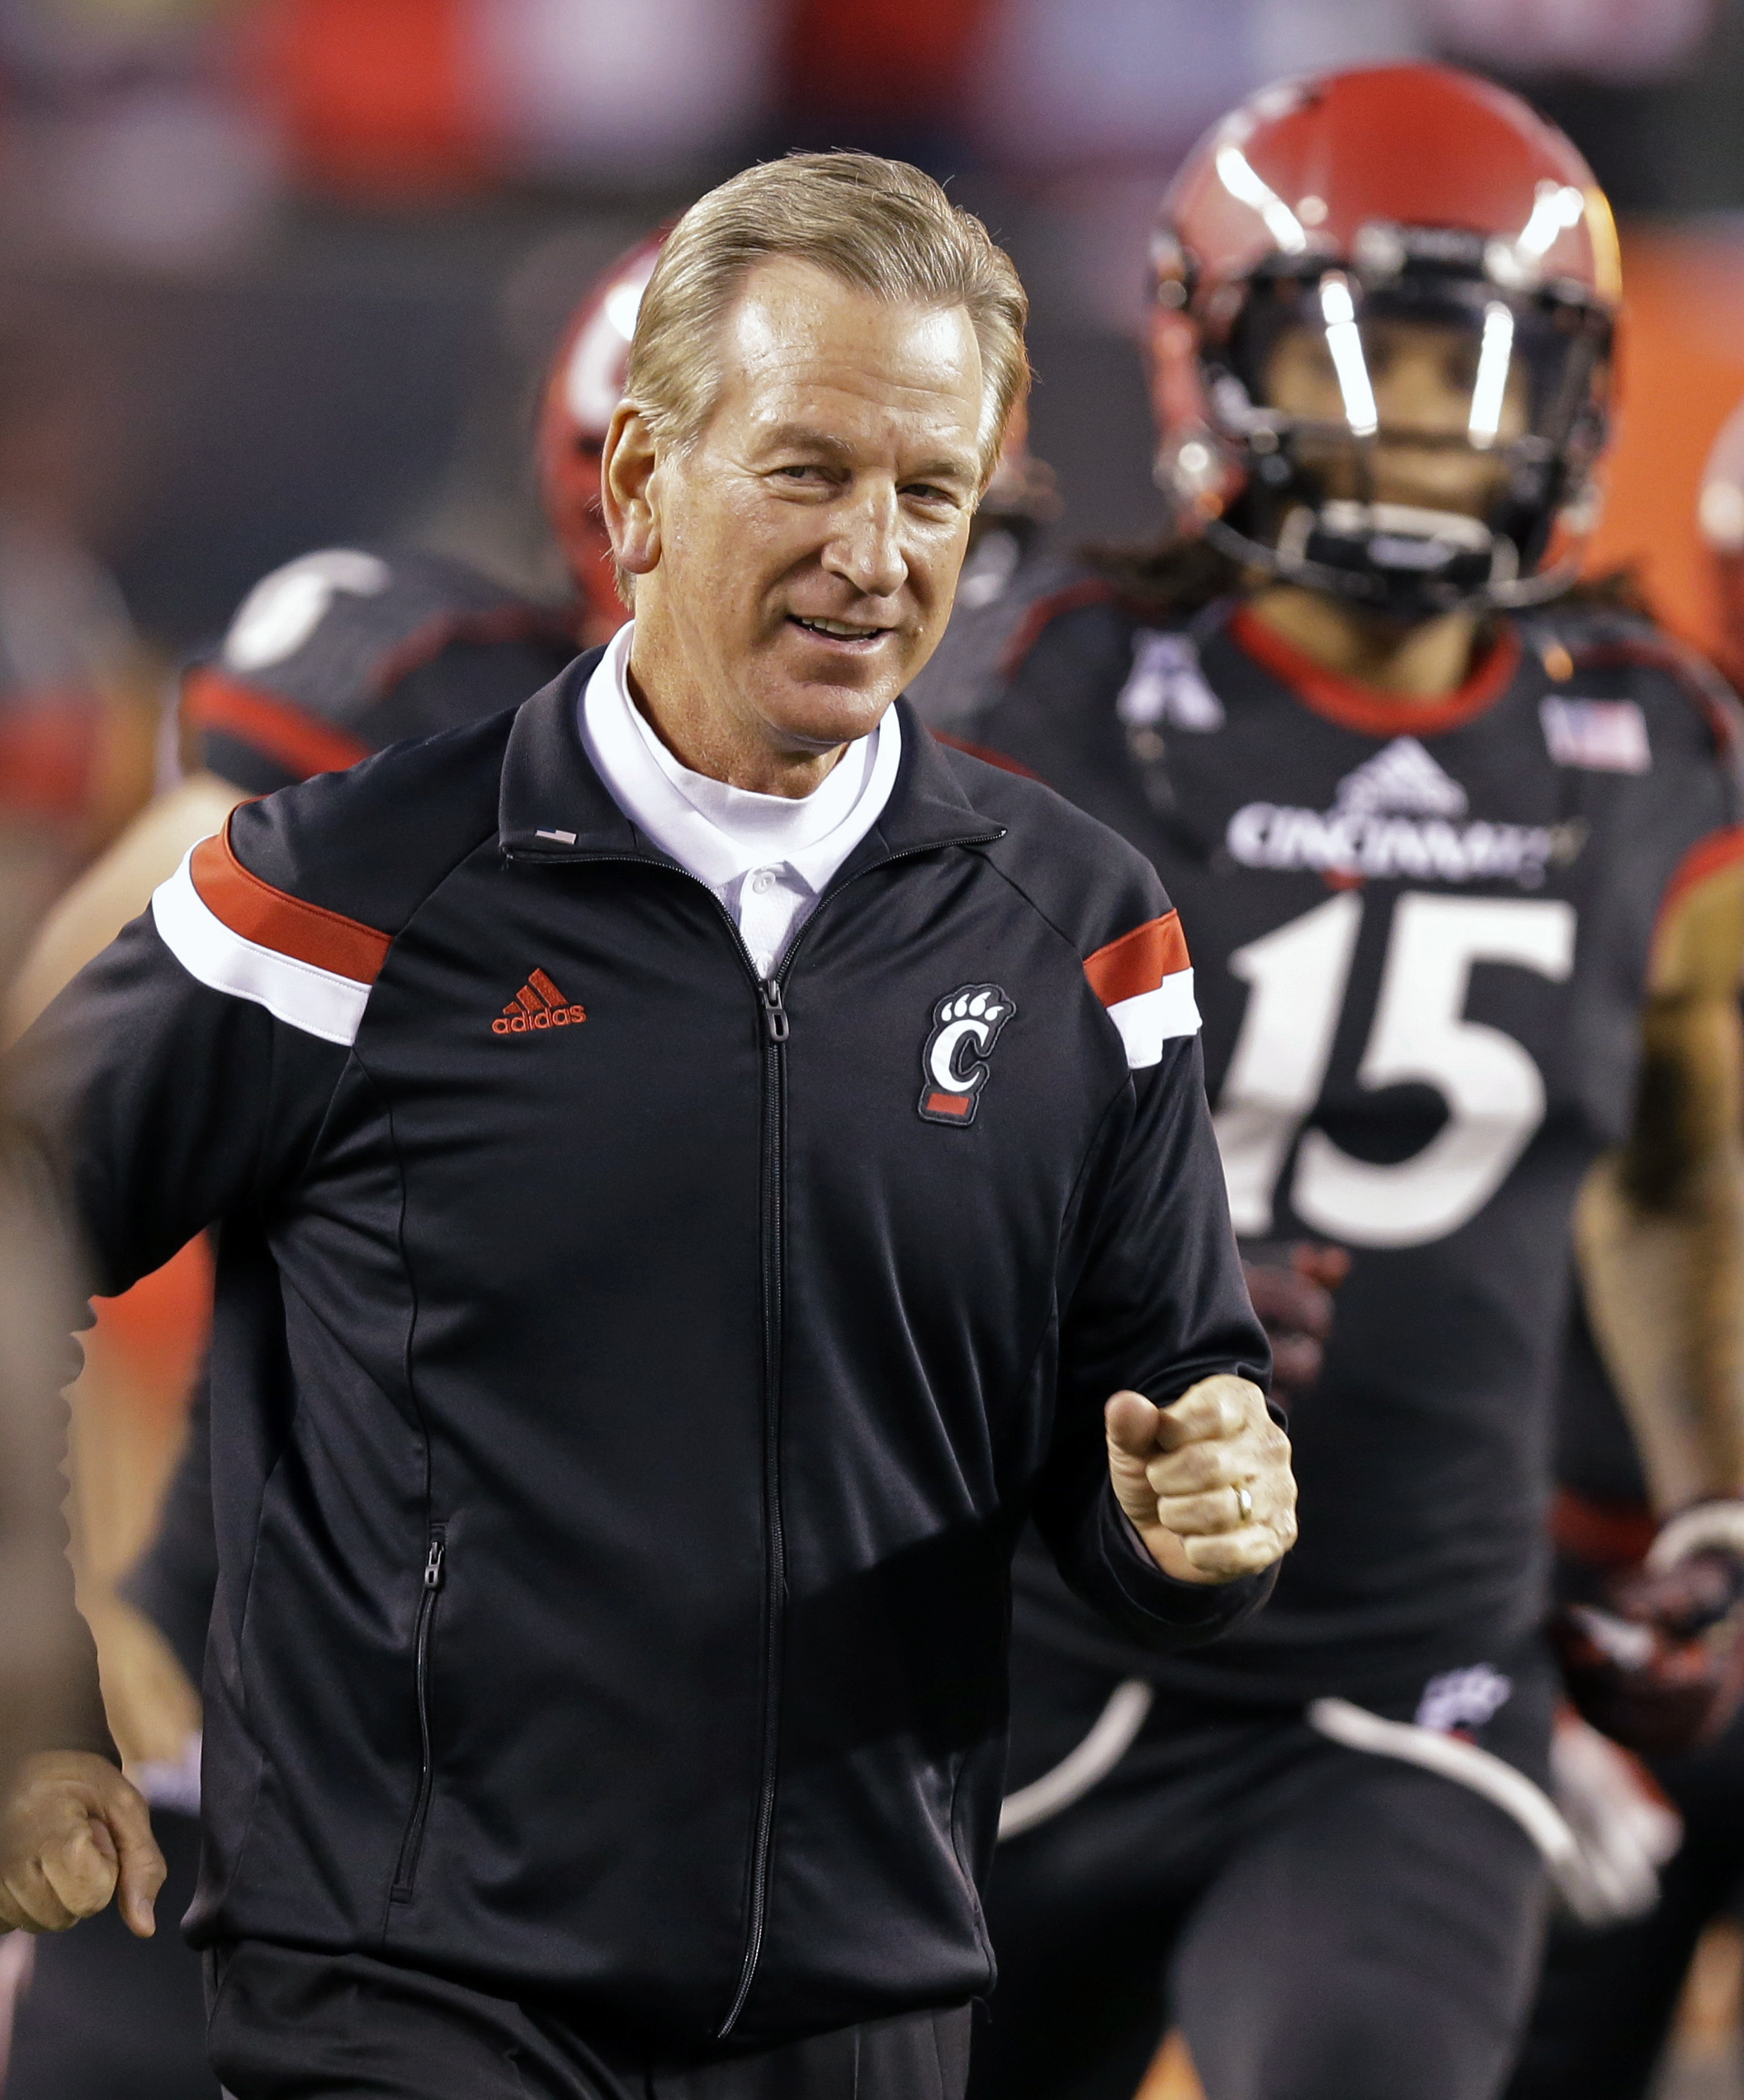 Cincinnati coach Tommy Tuberville runs onto the field at the start of an NCAA college football game against South Florida, Friday, Oct. 24, 2014, in Cincinnati. (AP Photo/Al Behrman)